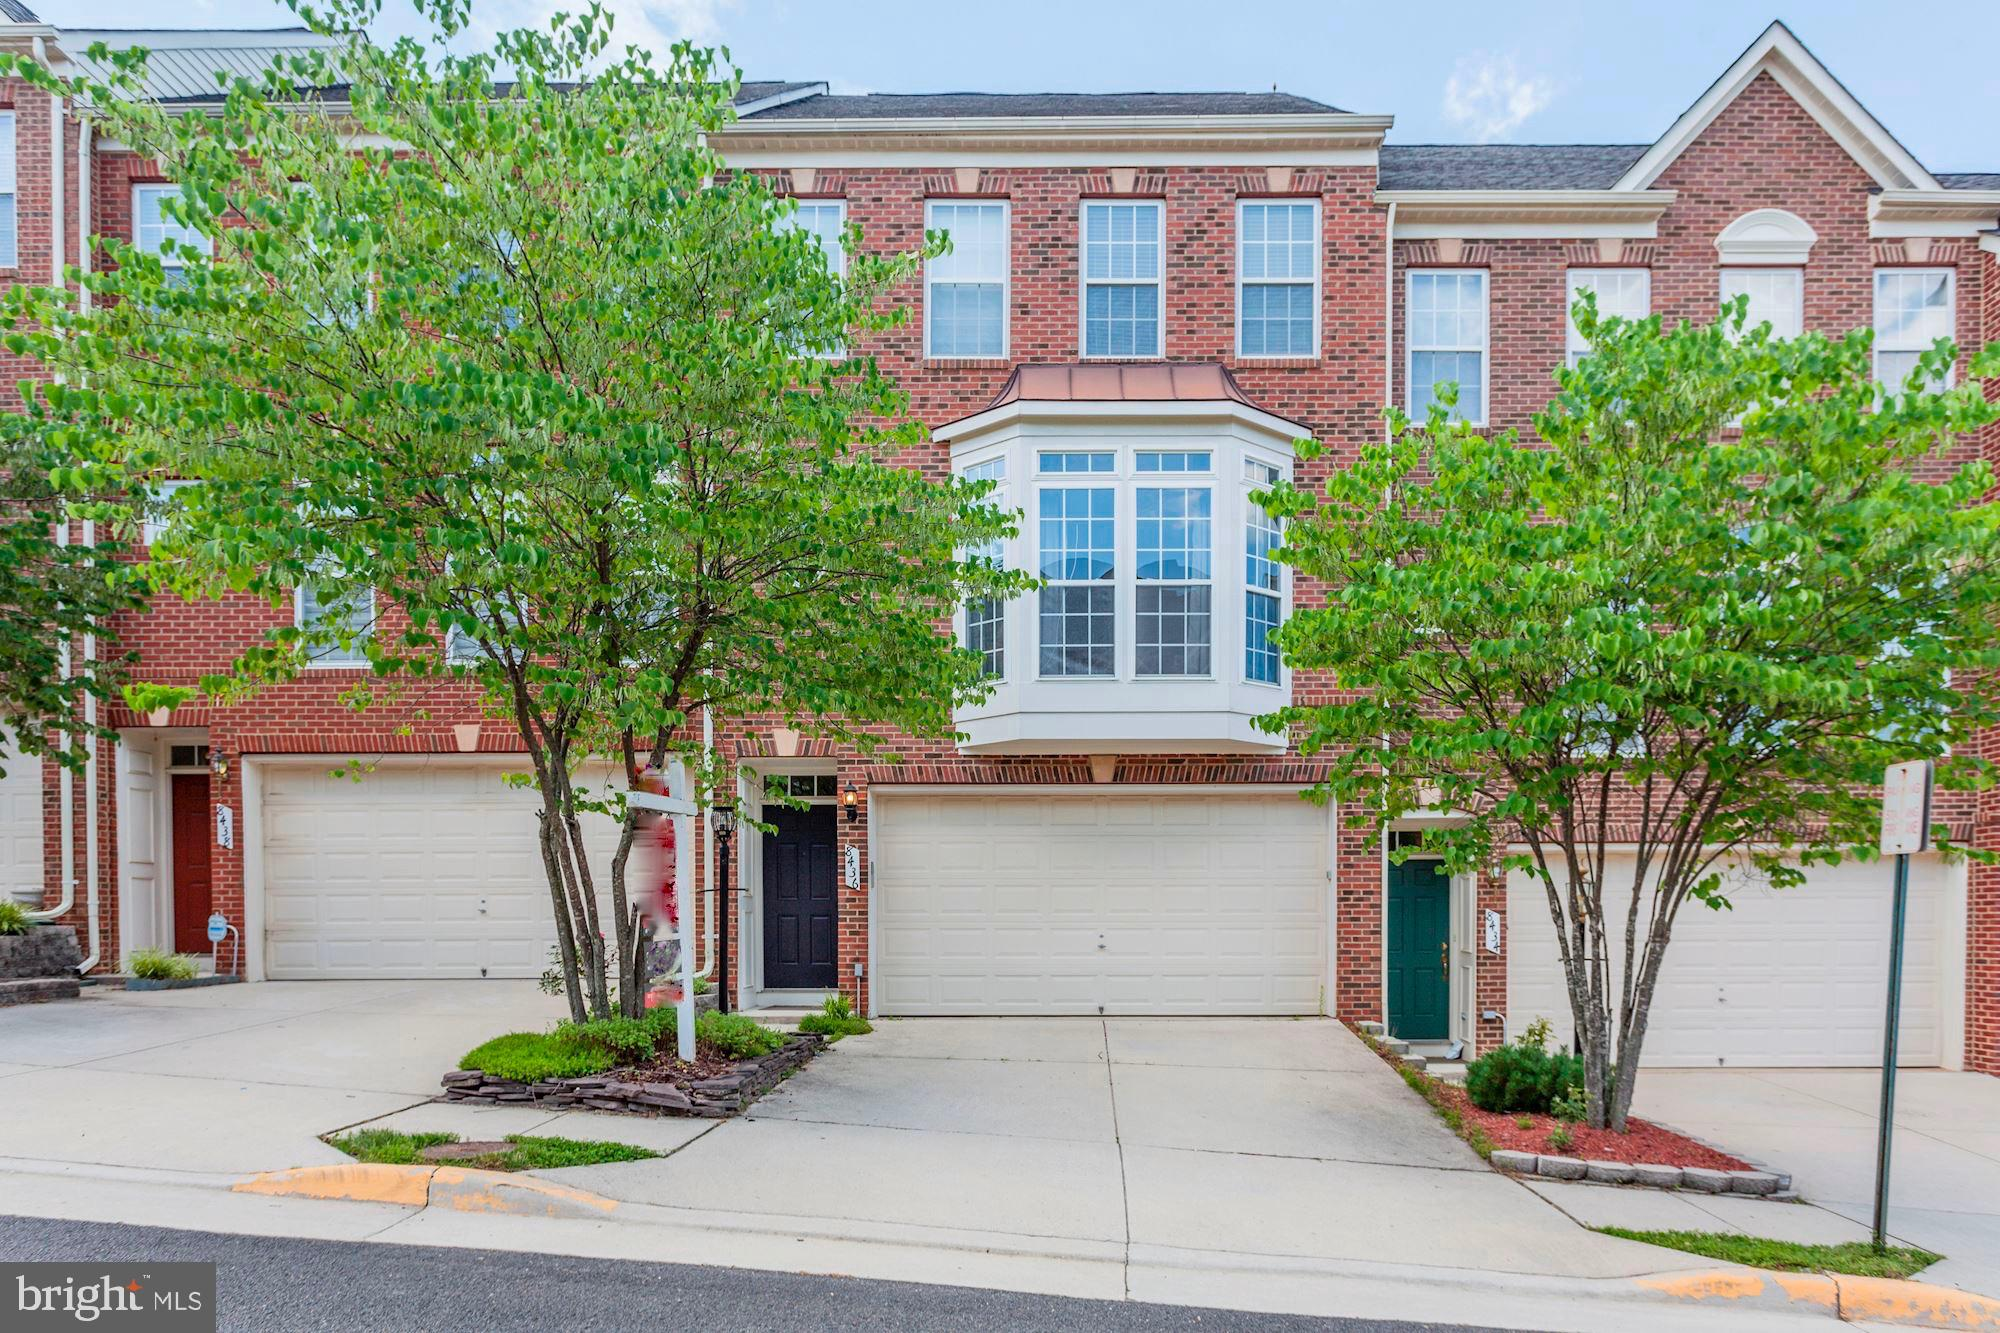 DELIGHTFUL & LIGHT-FILLED all brick town home w/2-car garage. 3BR/3.5BA, HUGE eat-in kitchen w/center island & a wall of windows, airy vaulted-ceiling master suite w/ double vanity, soaking tub & sep. shower. Large rooms, high ceilings & oversized windows give the entire home an open, expansive feel. Community tot lot, pool & easy access to I-95, shopping & dining. Only 2 miles to Lorton Station VRE. ***INVESTORS ONLY - tenant occupied until 6/2020 - great opportunity to have instant equity and income.***